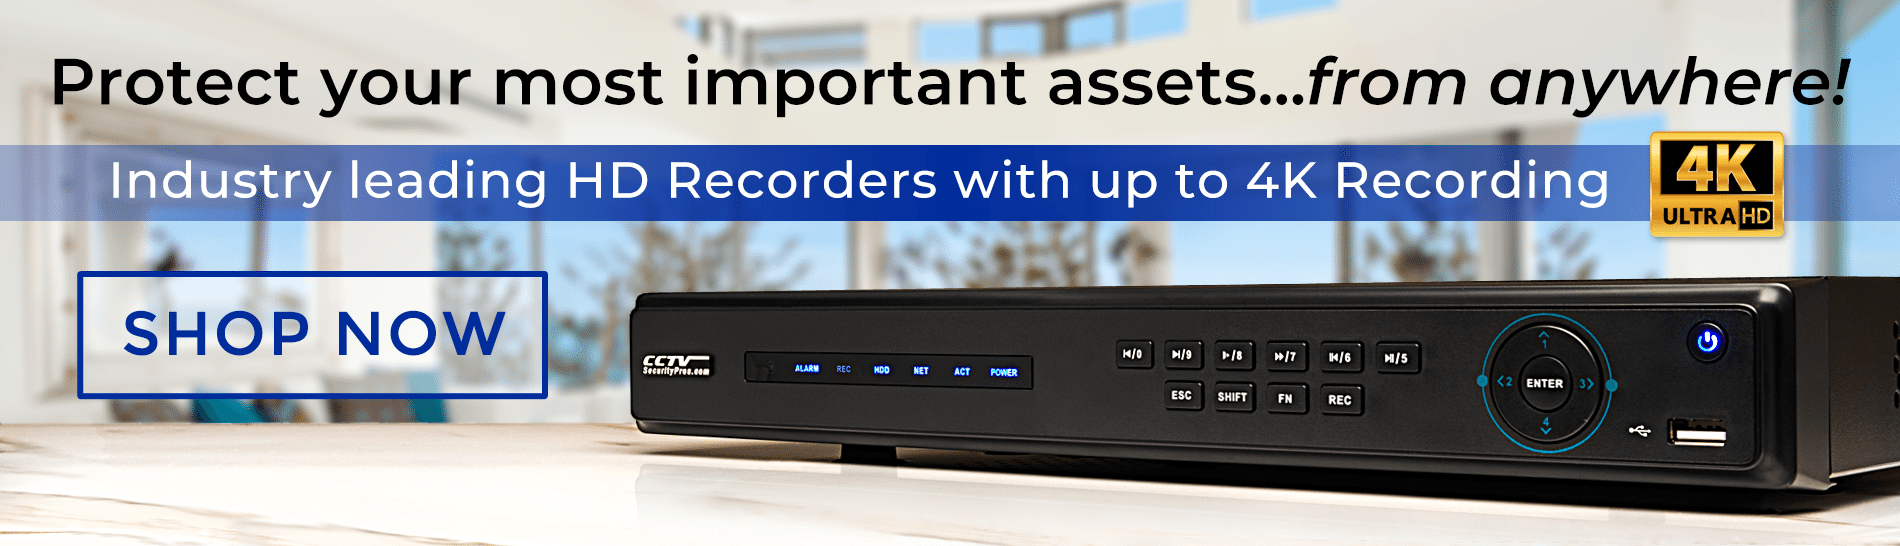 Protect your most important assets from anywhere with HD recorders and 4k recording